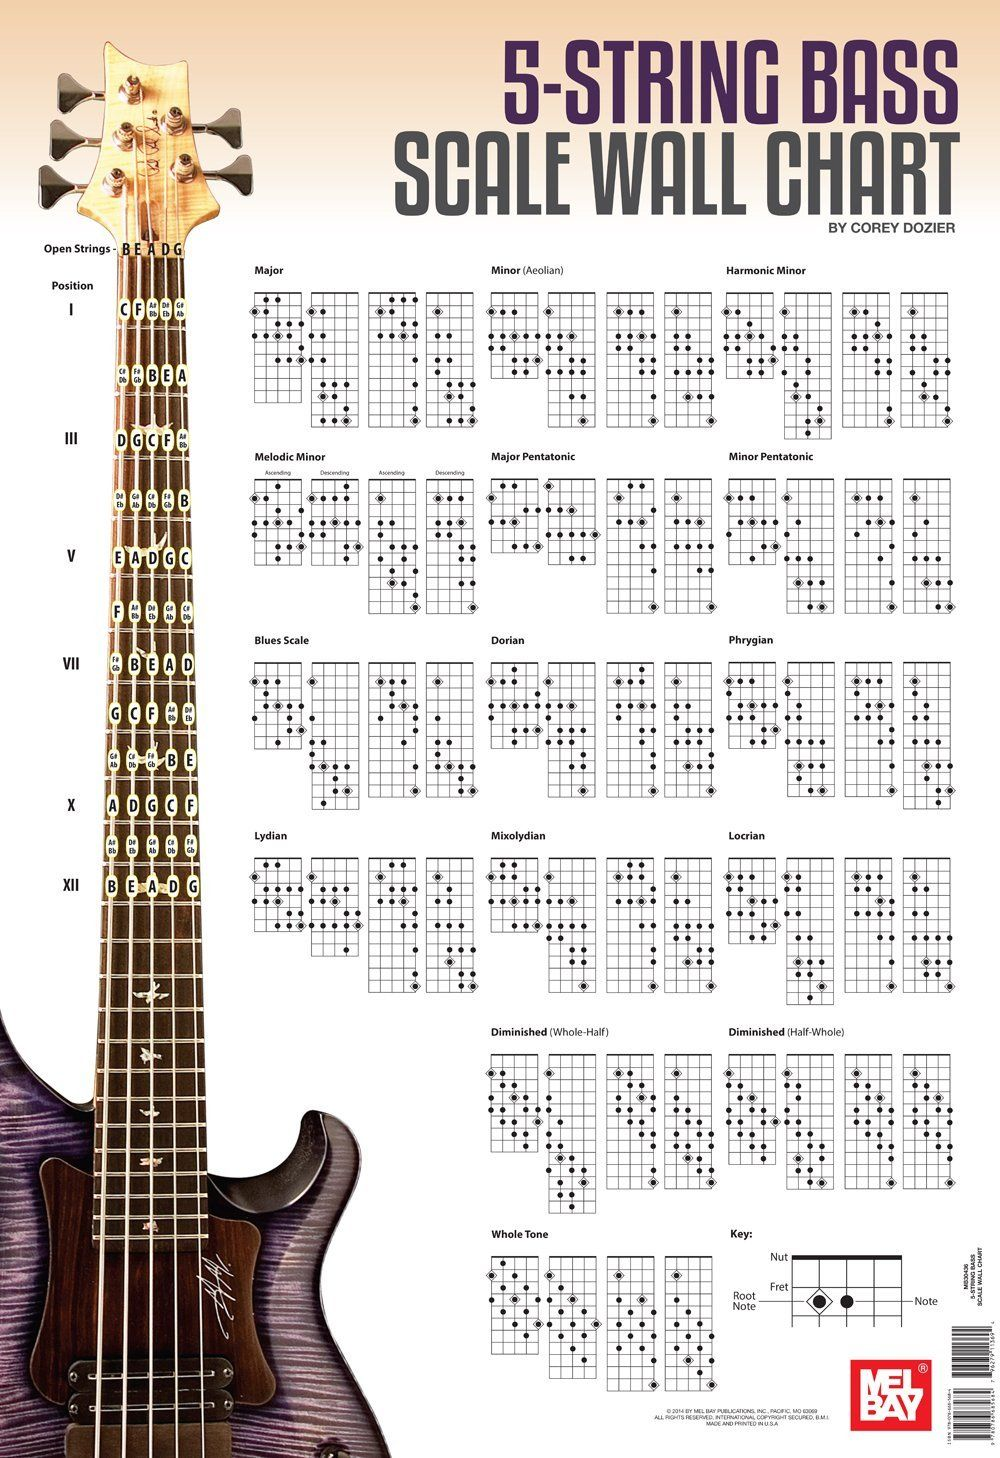 5 string bass scale wall chart music theory pinterest bass guitars and bass guitar scales. Black Bedroom Furniture Sets. Home Design Ideas